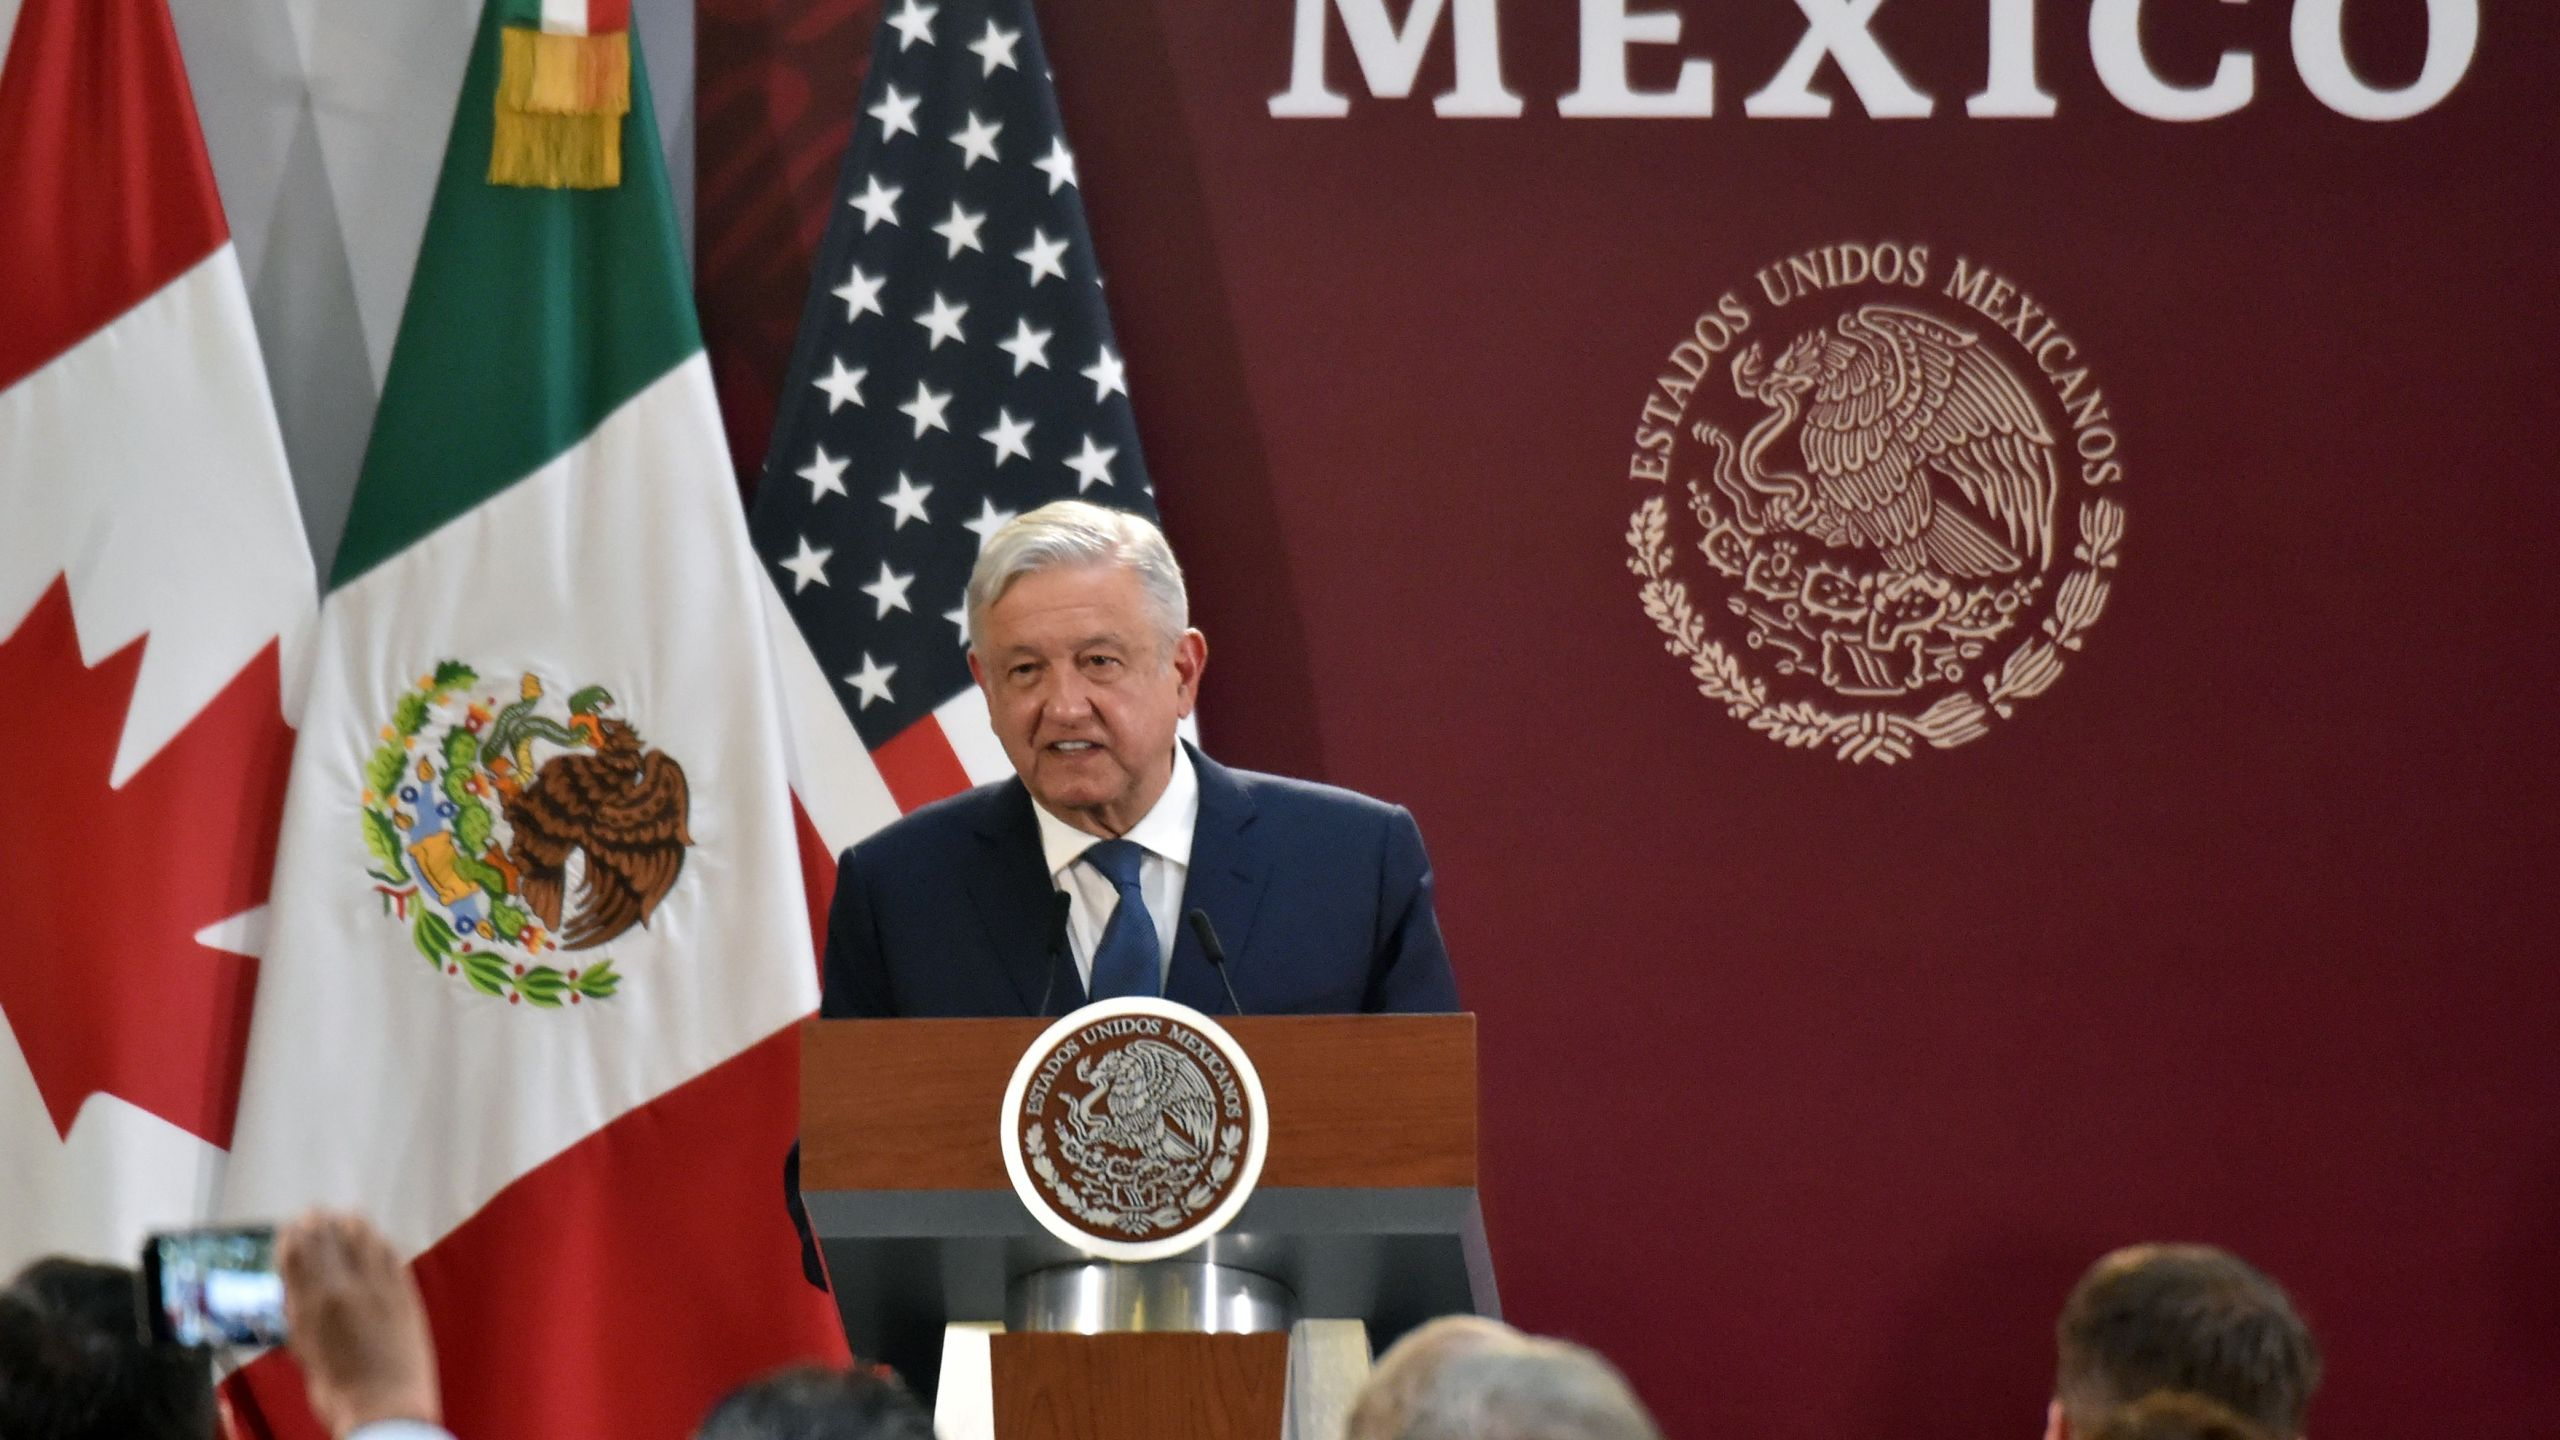 Mexican President Andres Manuel Lopez Obrador speaks during a meeting with United States Trade Representative Robert Lighthizer (out of frame) and Canadian Vice-Prime Minister Chrystia Freeland (out of frame) in Mexico City on December 10, 2019. - The United States, Mexico and Canada signed a deal Tuesday finalizing their new trade agreement after more than two years of arduous negotiations and paving the way to ratification. (Photo by RODRIGO ARANGUA / AFP) (Photo by RODRIGO ARANGUA/AFP via Getty Images)